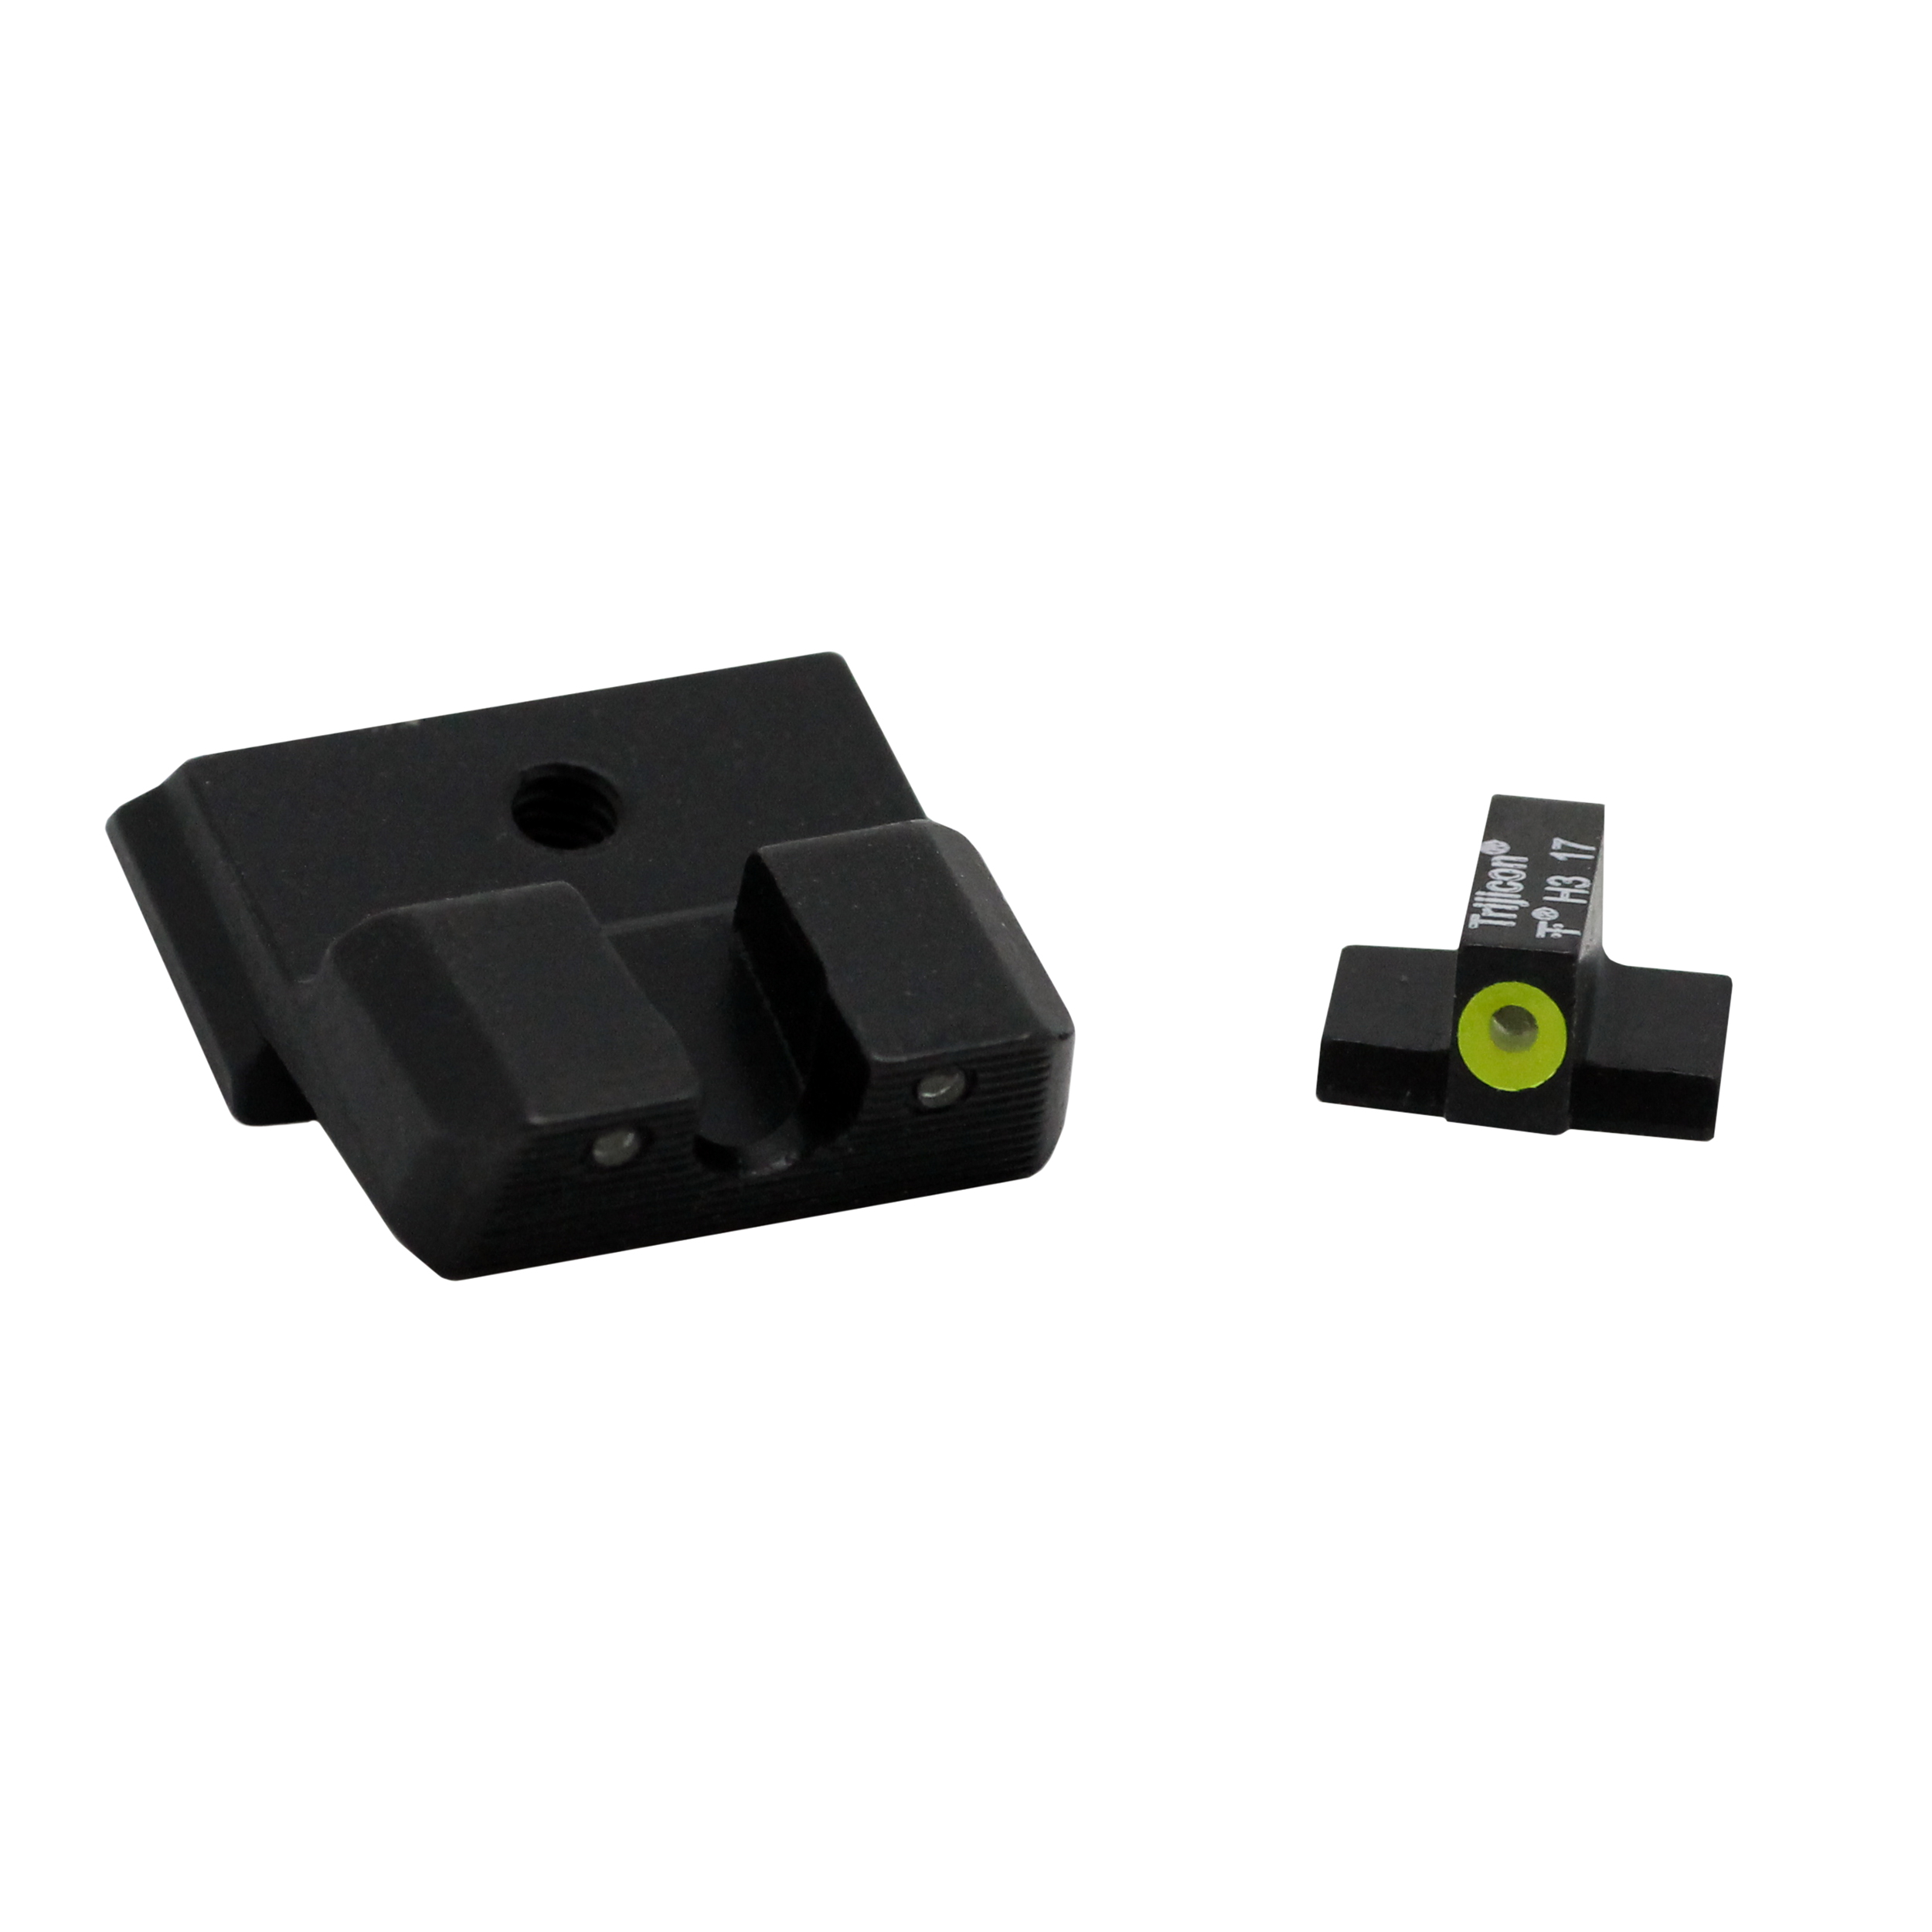 Trijicon HD XR Night Sight Set Smith & Wesson Shield .40, .45, and 9mm, Yellow Front Outline Lamp by Trijicon